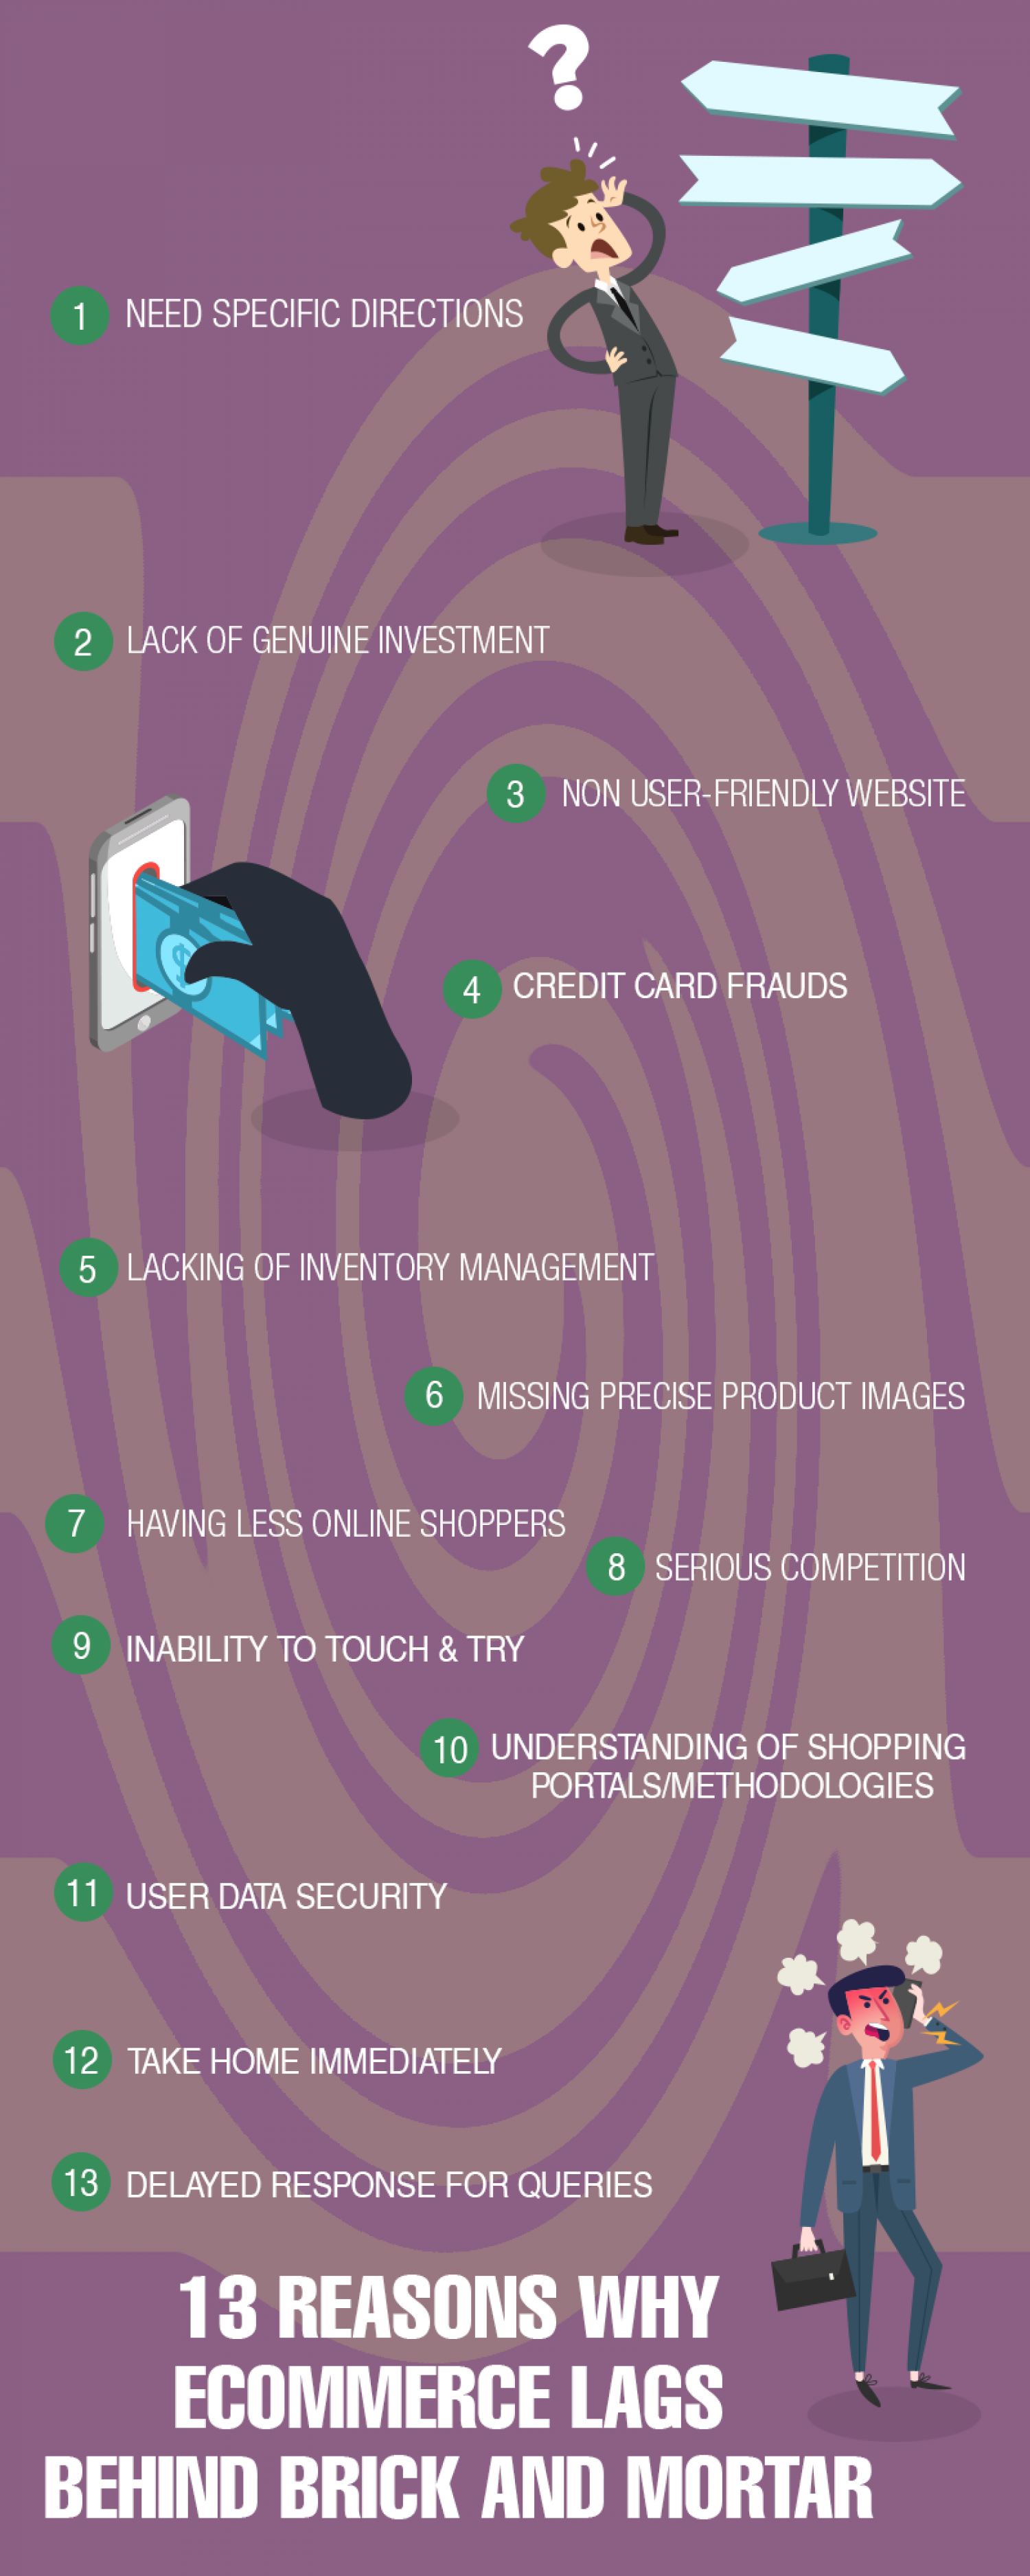 13 Reasons Why E-commerce Lags Behind Brick & Mortar Infographic